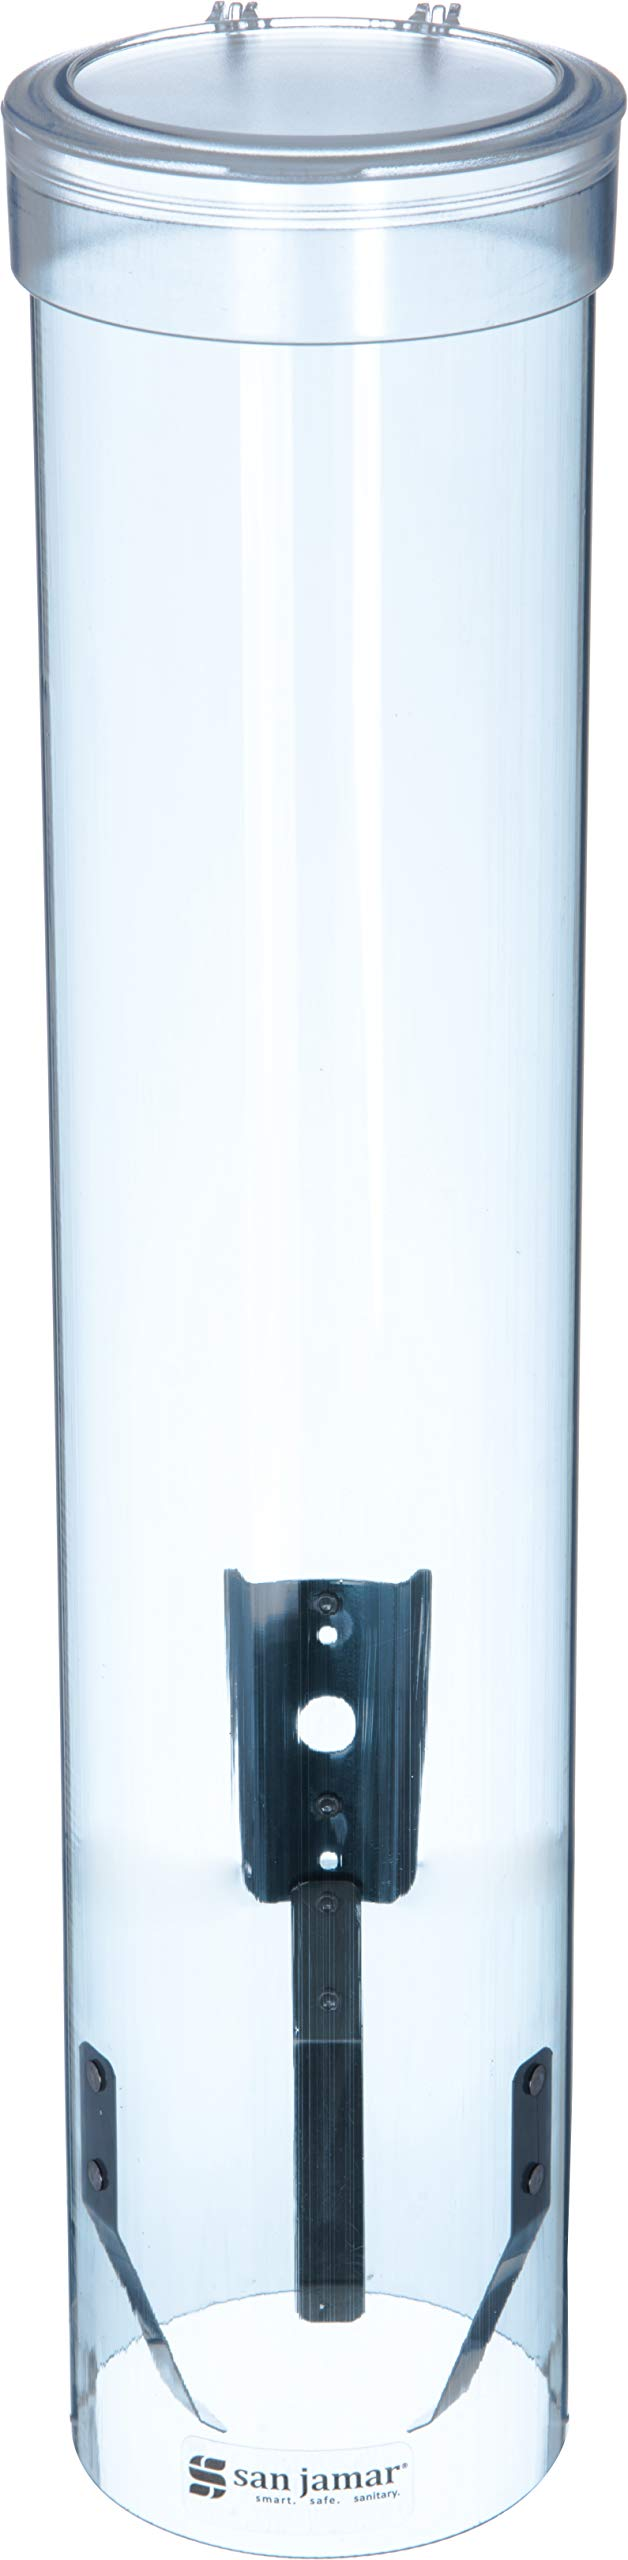 "San Jamar C3165TBL C3165FBL Medium Pull Type Water Cup Dispenser, Fits 4 to 10 oz Cone and Flat Bottom Cups, 16"" Tube Length, Transparent Blue"